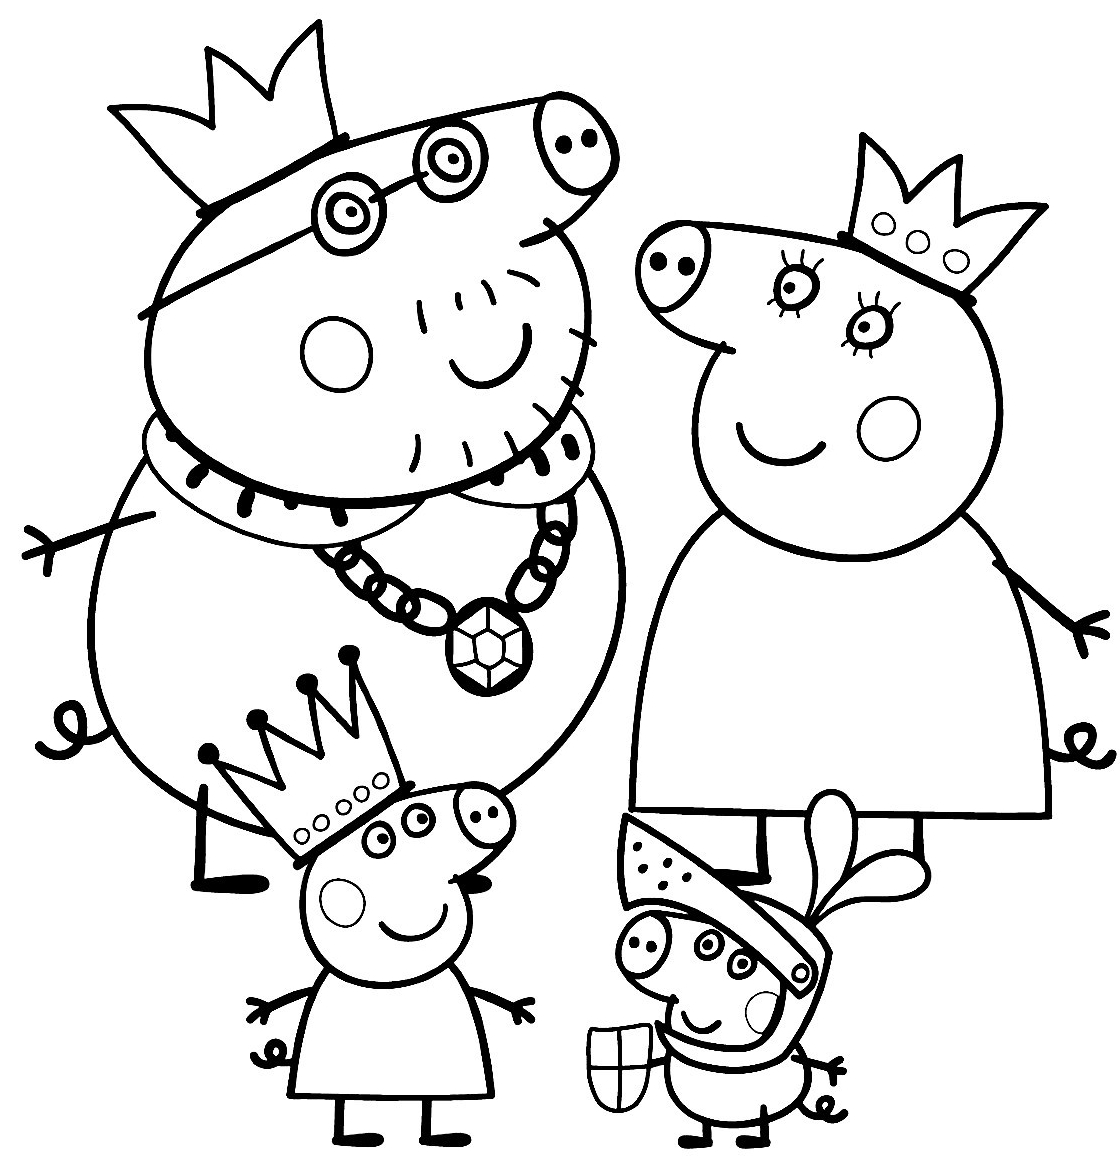 peppa pig coloring pages - q=peppa pig car